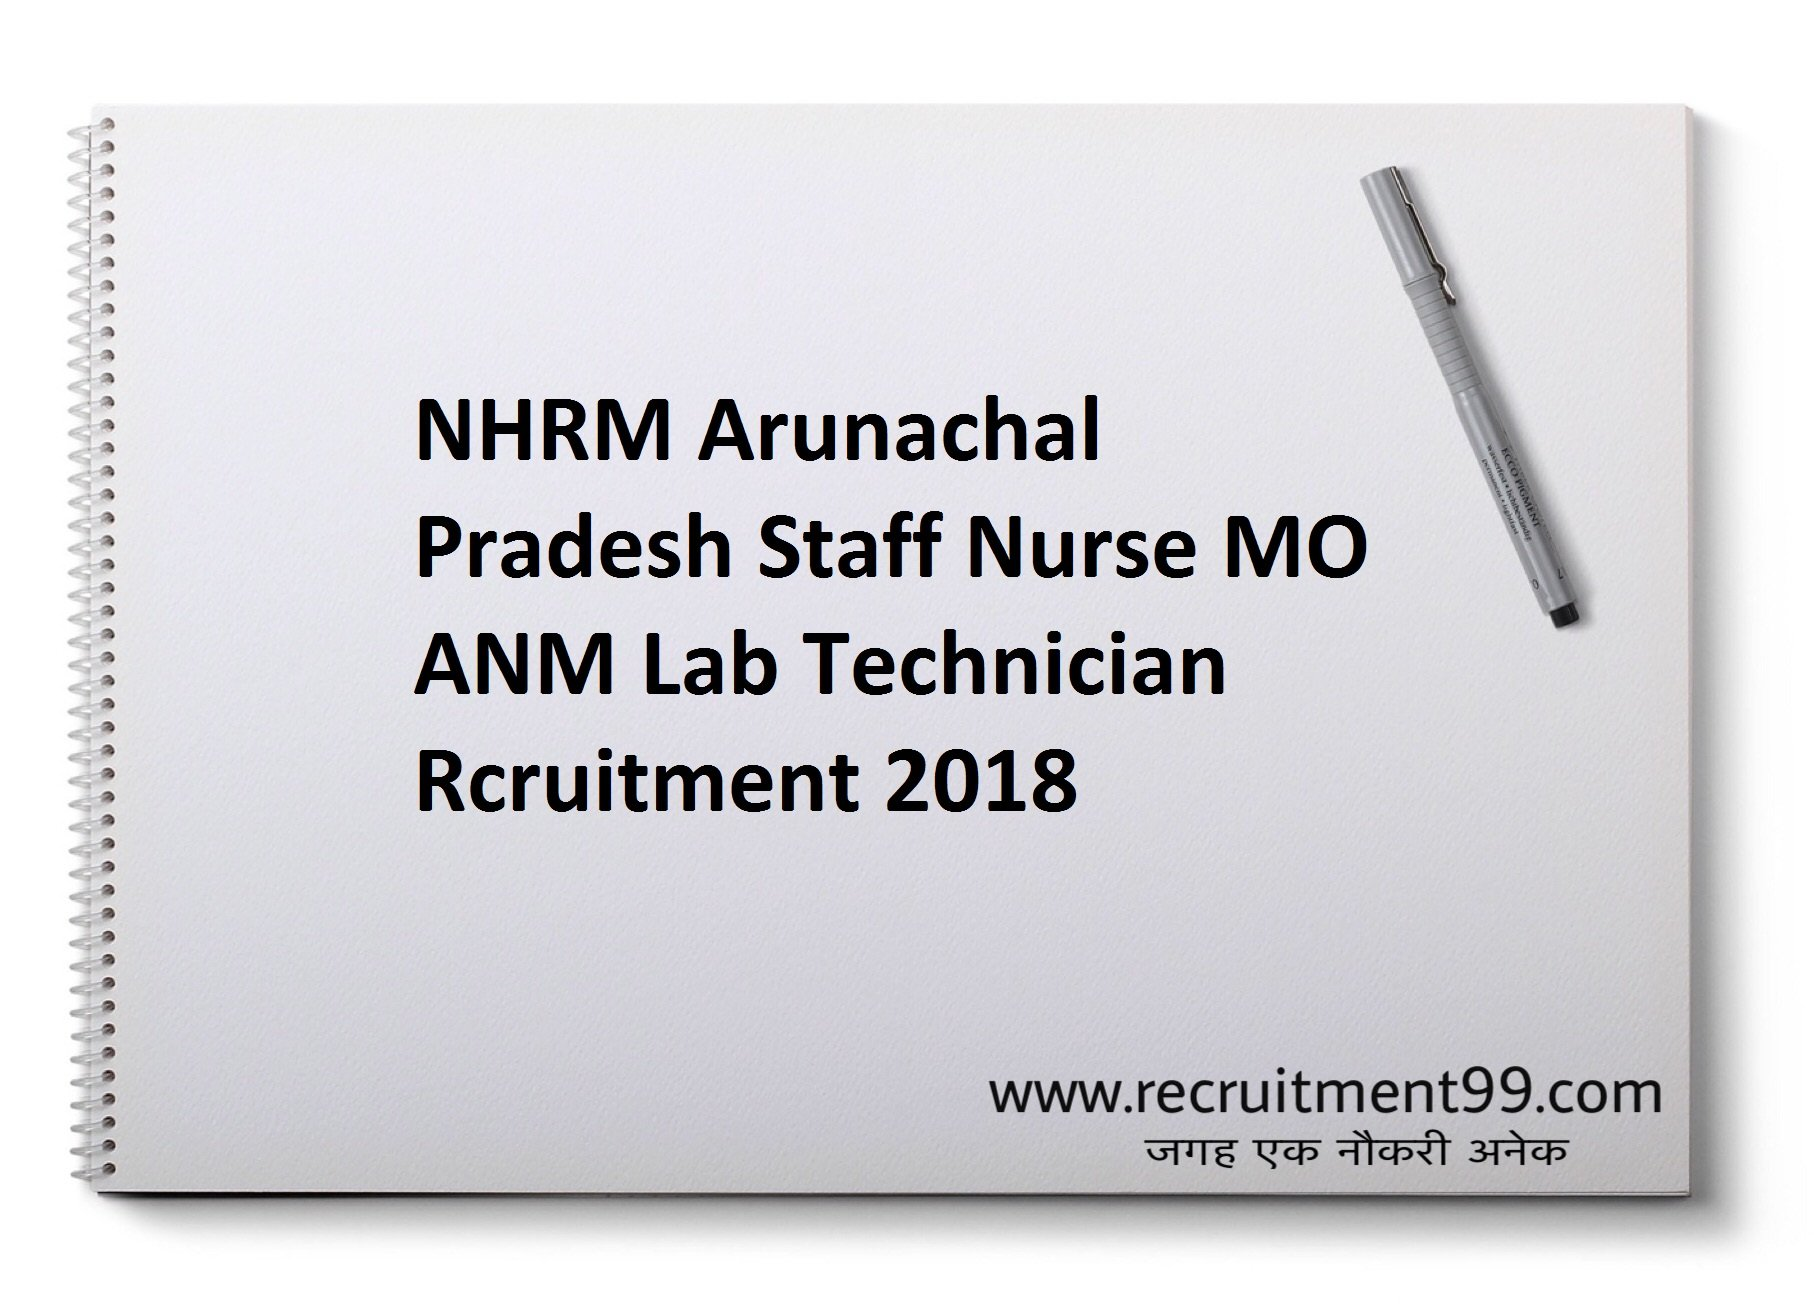 NHRM Arunachal Pradesh Staff Nurse MO ANM Lab Technician Recruitment Admit Card Result 2018